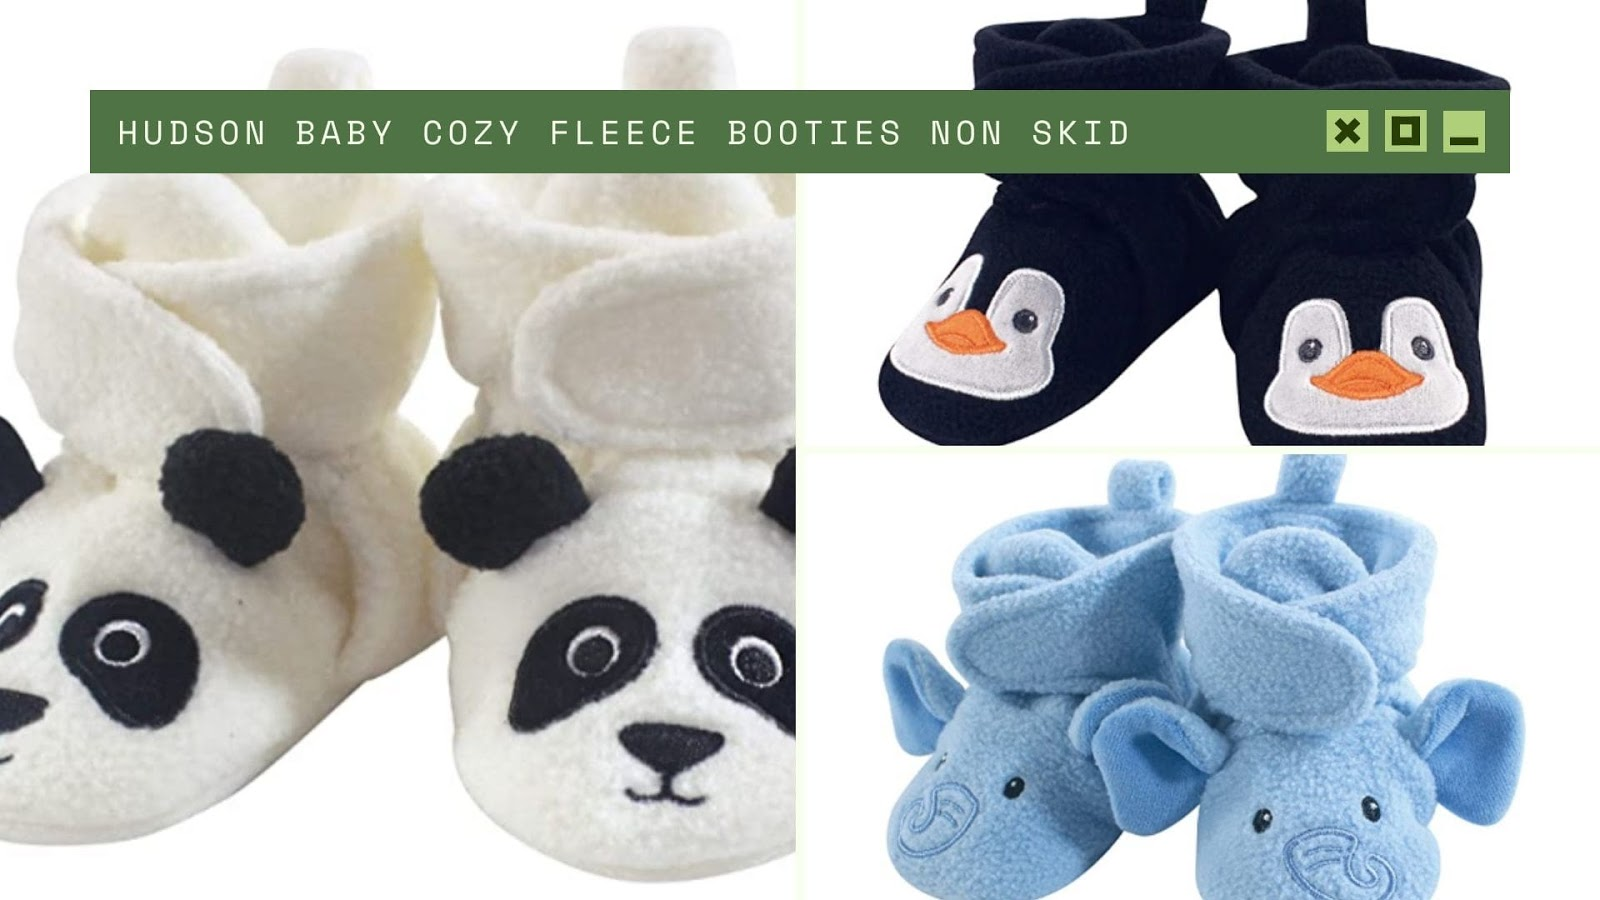 shopping for baby Hudson Baby Cozy Fleece Booties Non Skid